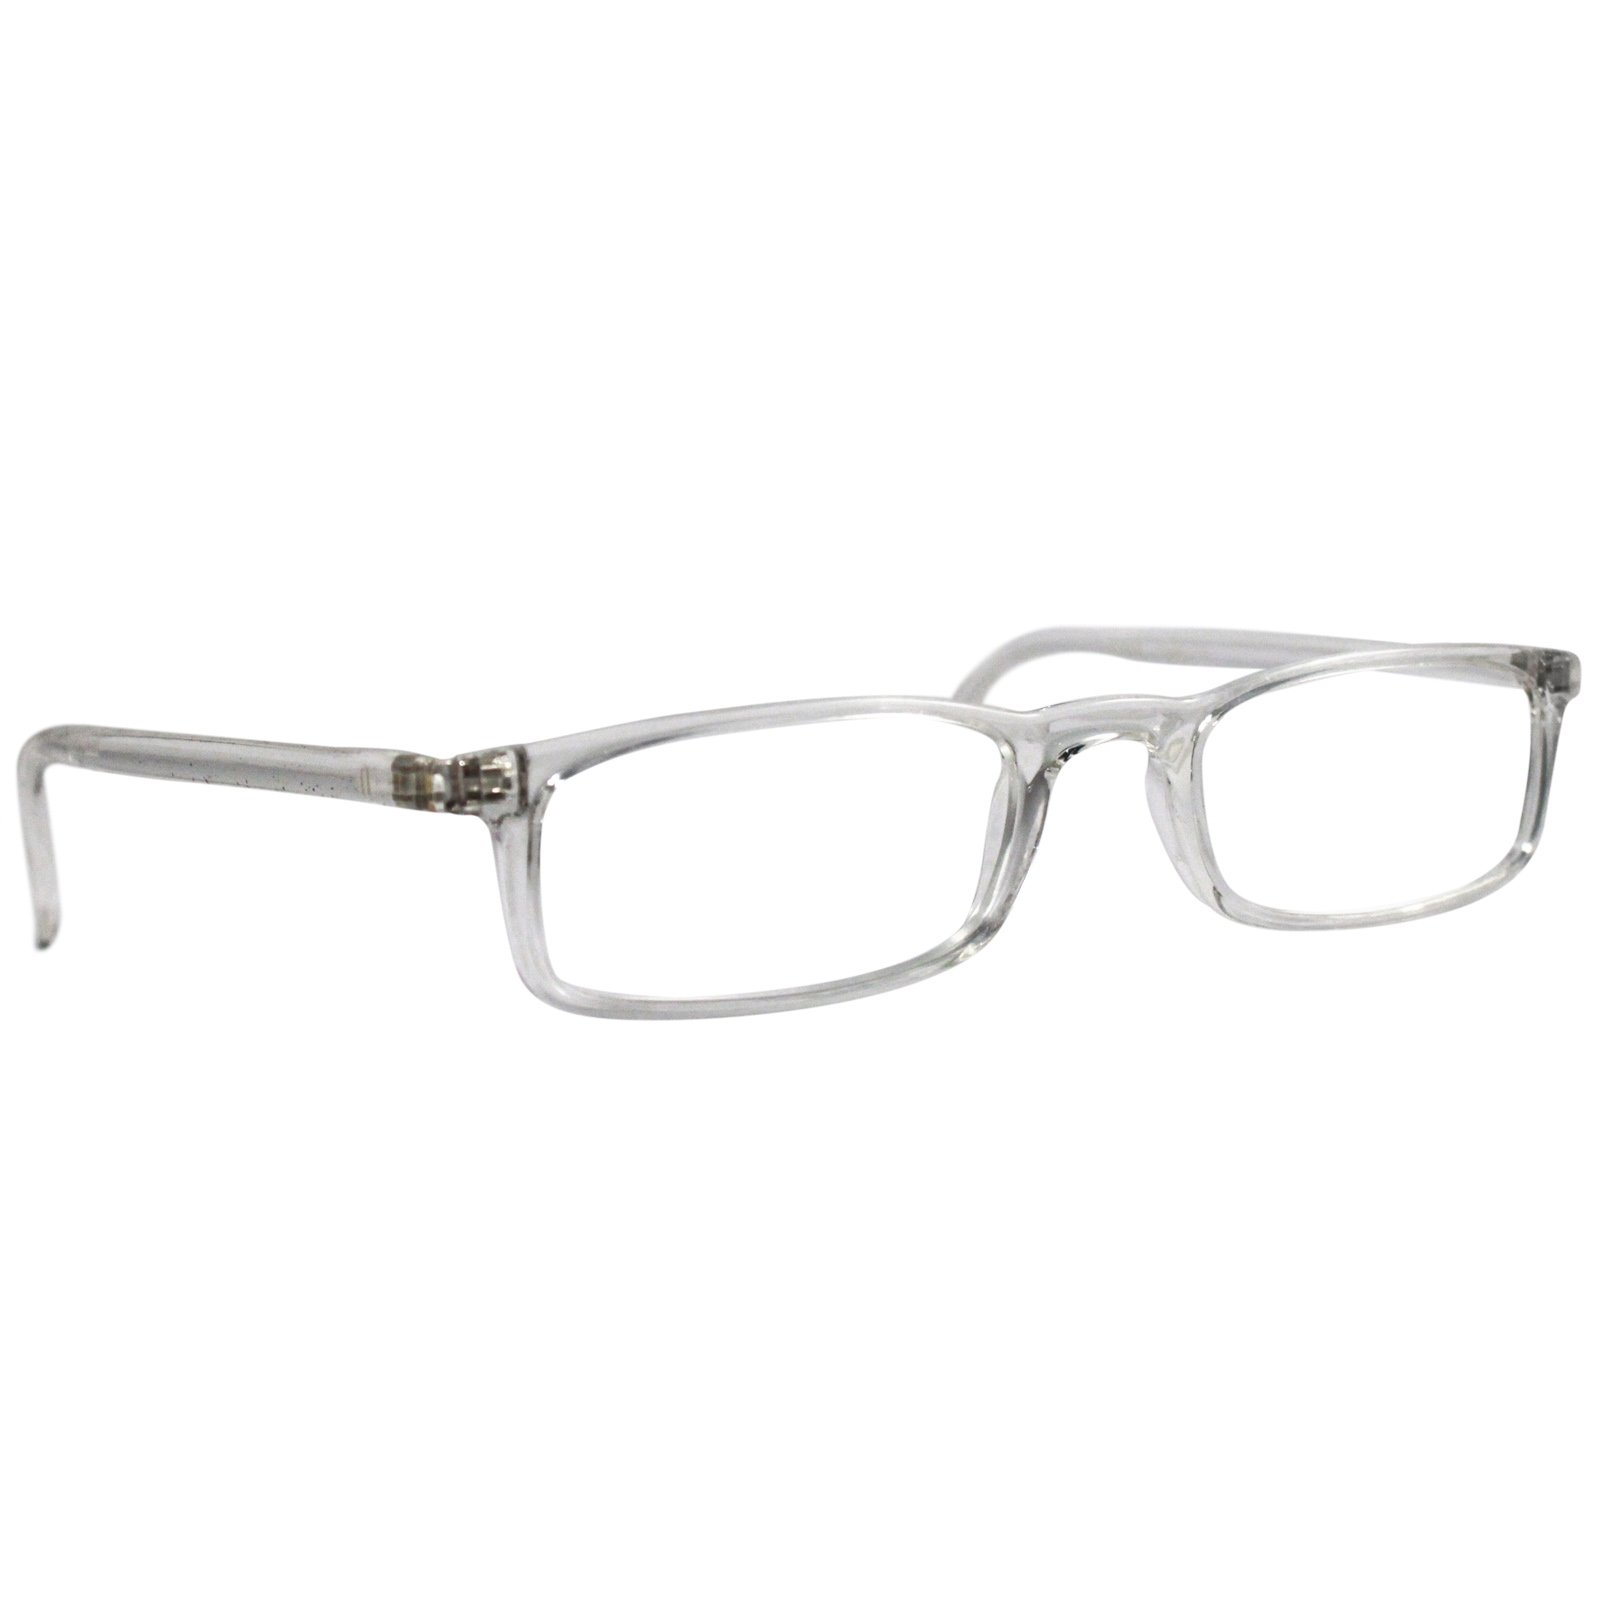 Reading Glasses Nannini Optics Vision Care Italian Fashion Readers - Crystal 2.5